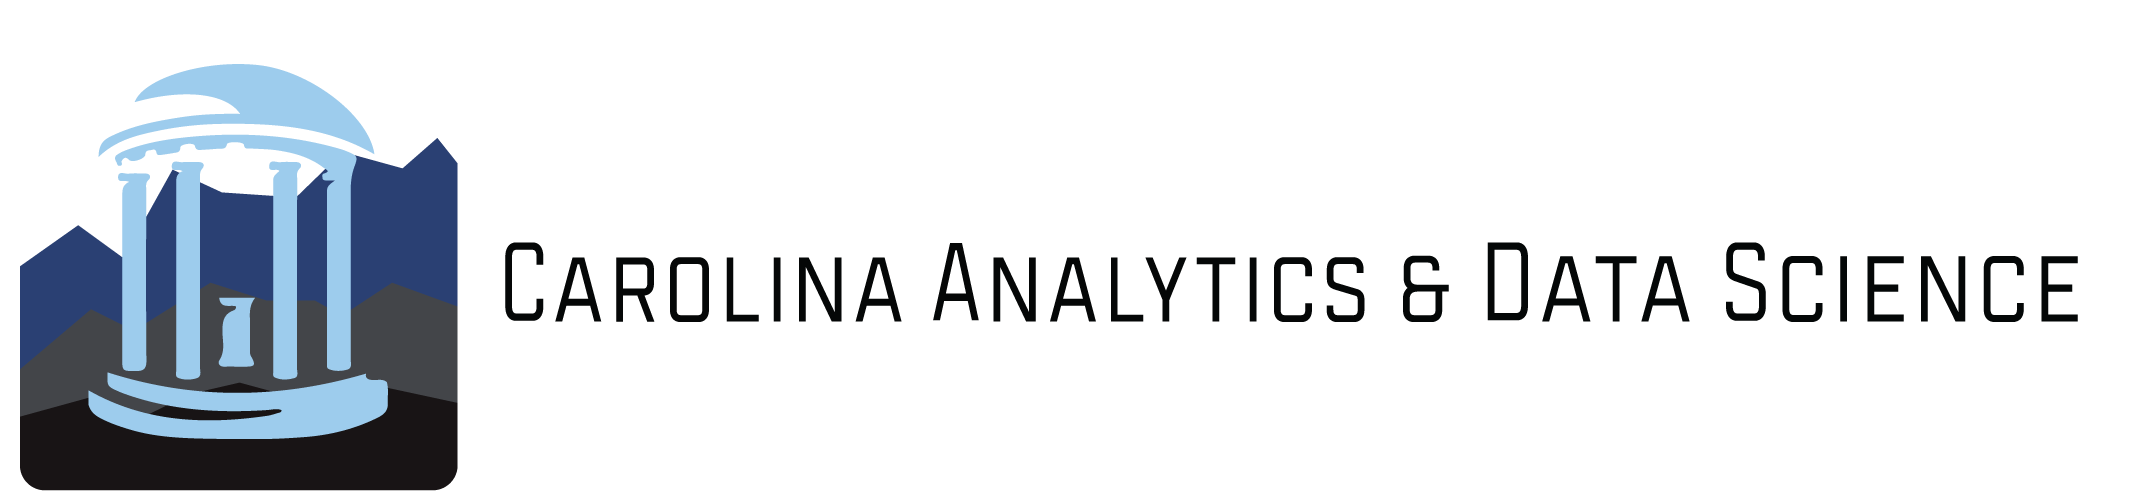 Carolina Analytics and Data Science